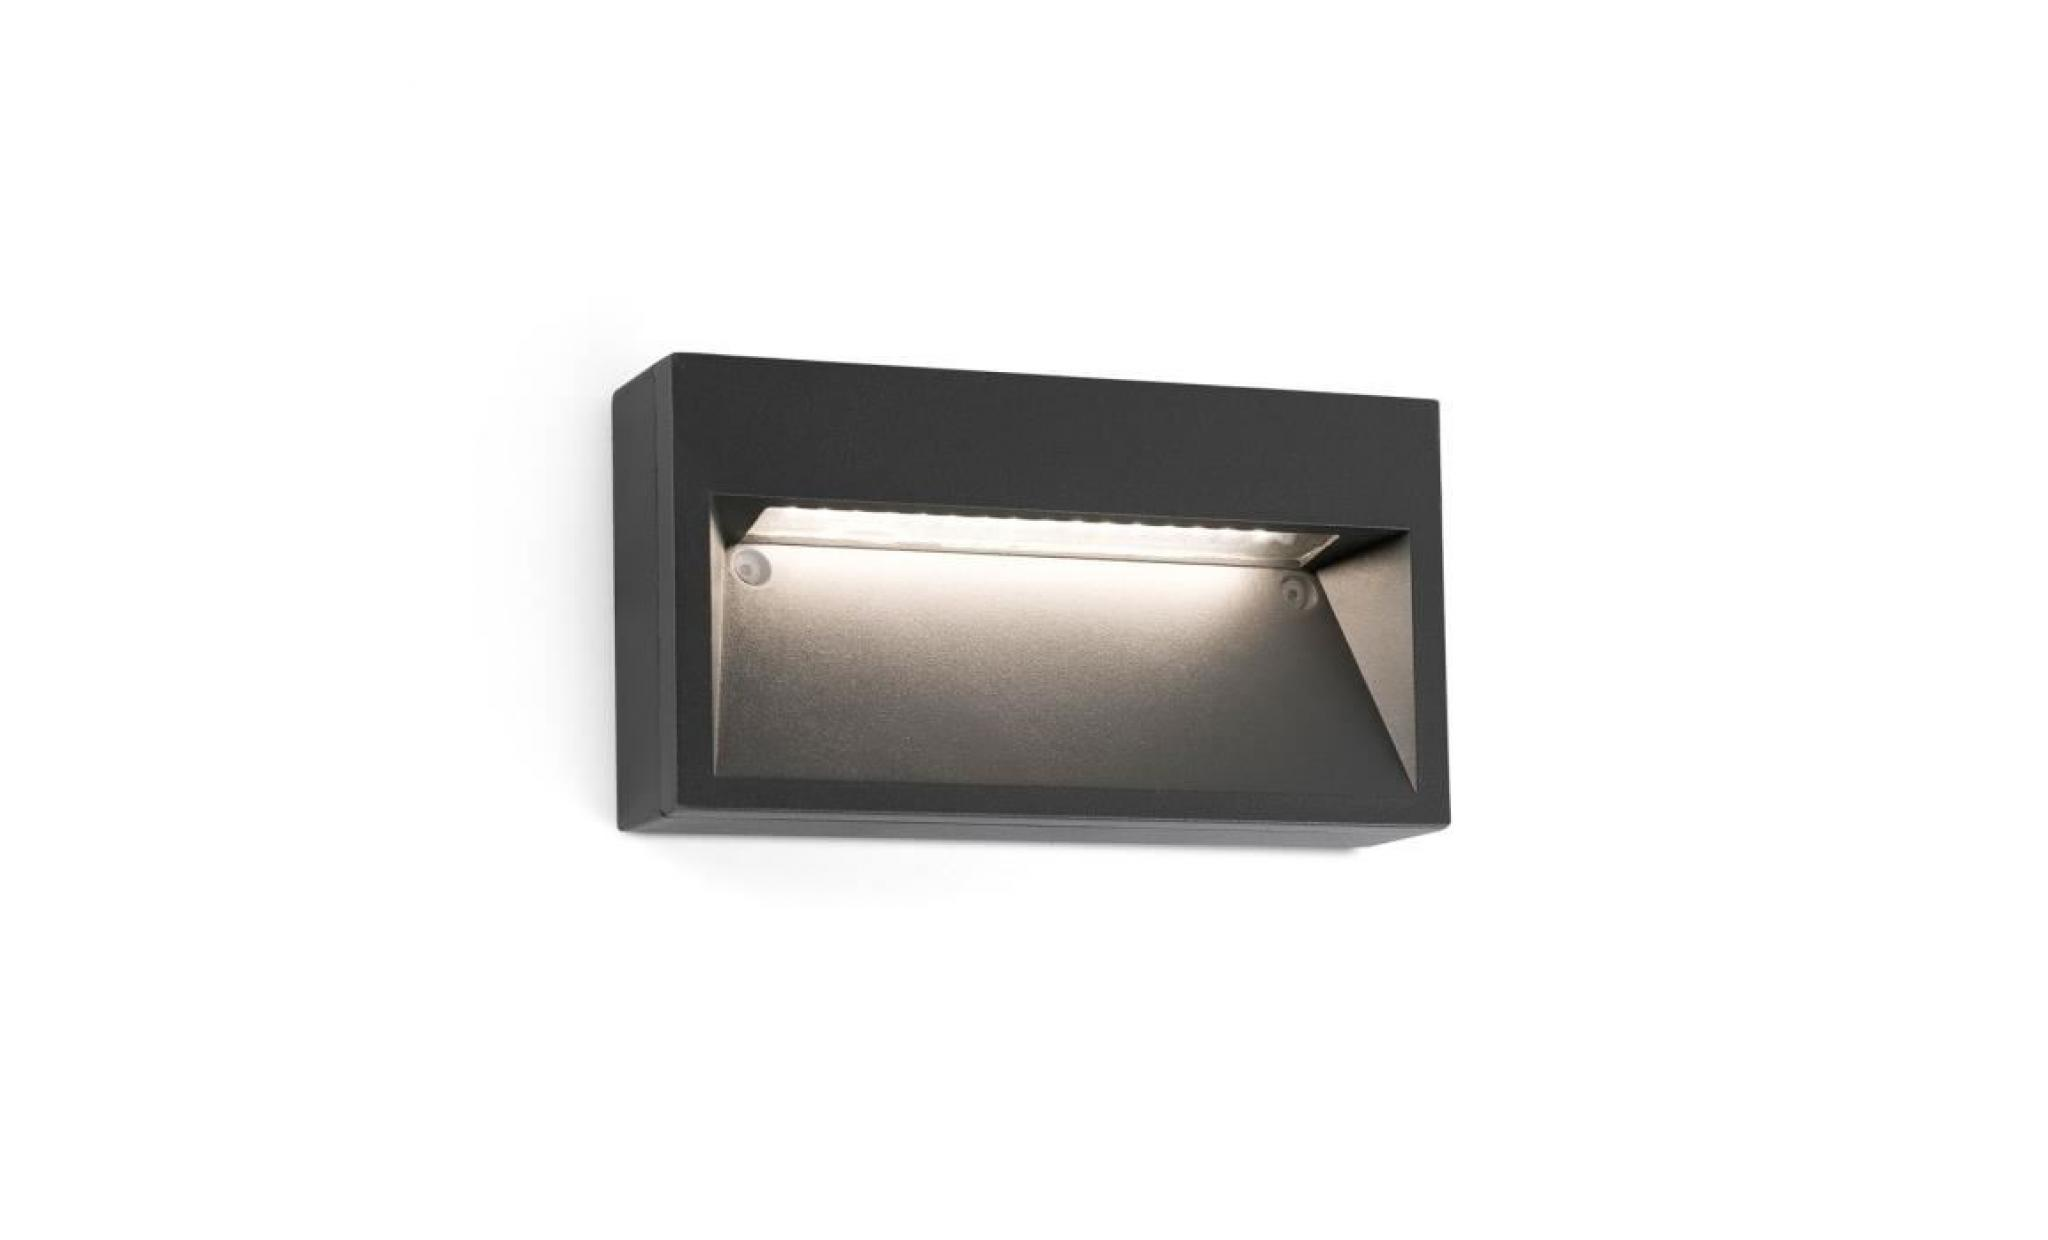 Spot Led Exterieur Encastrable Etanche Spot Encastrable Exterieur Spot 230v Encastrable Ext